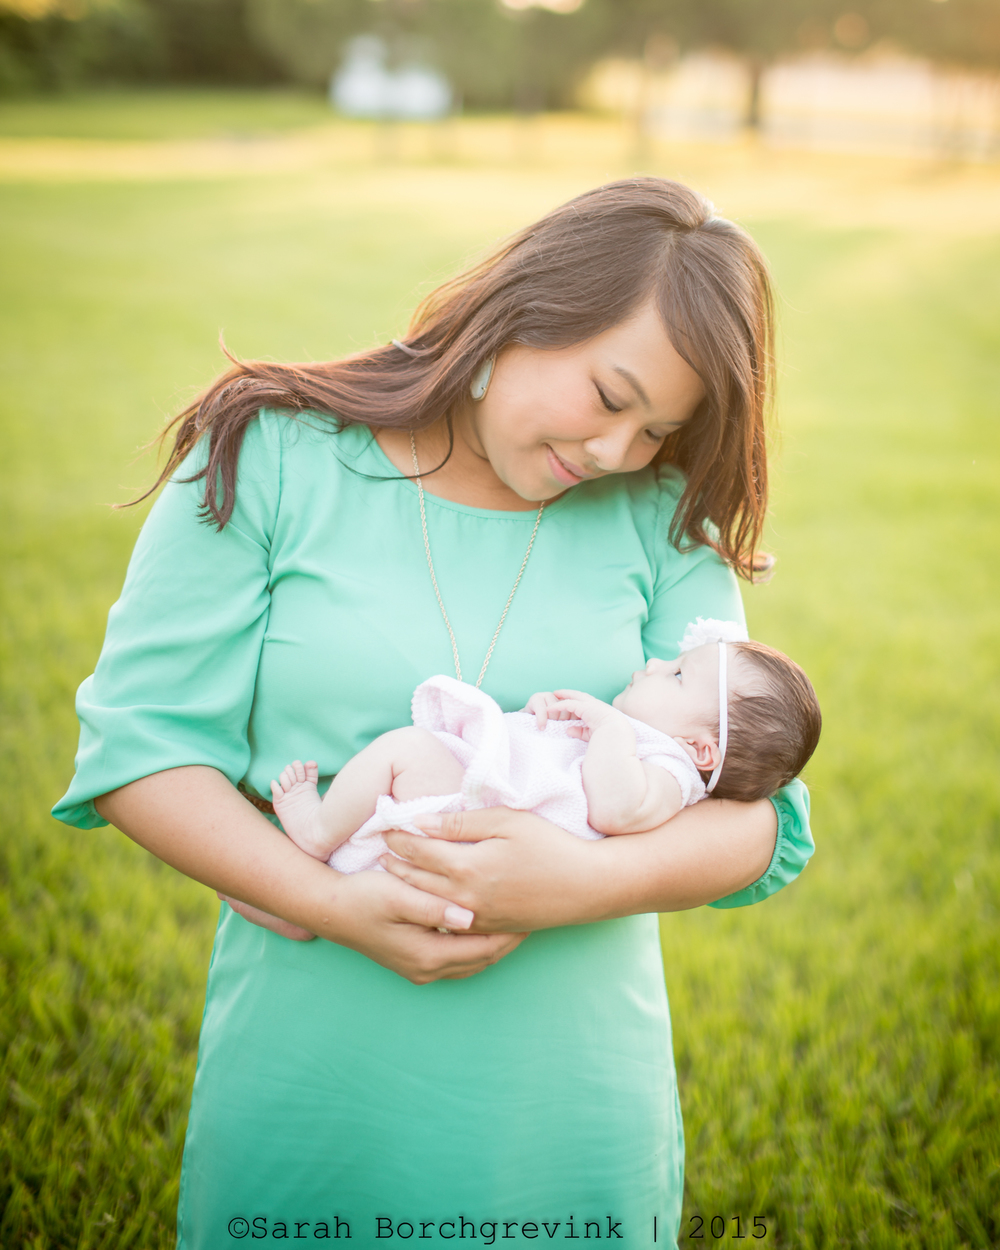 cypress photographer for families, children and newborns